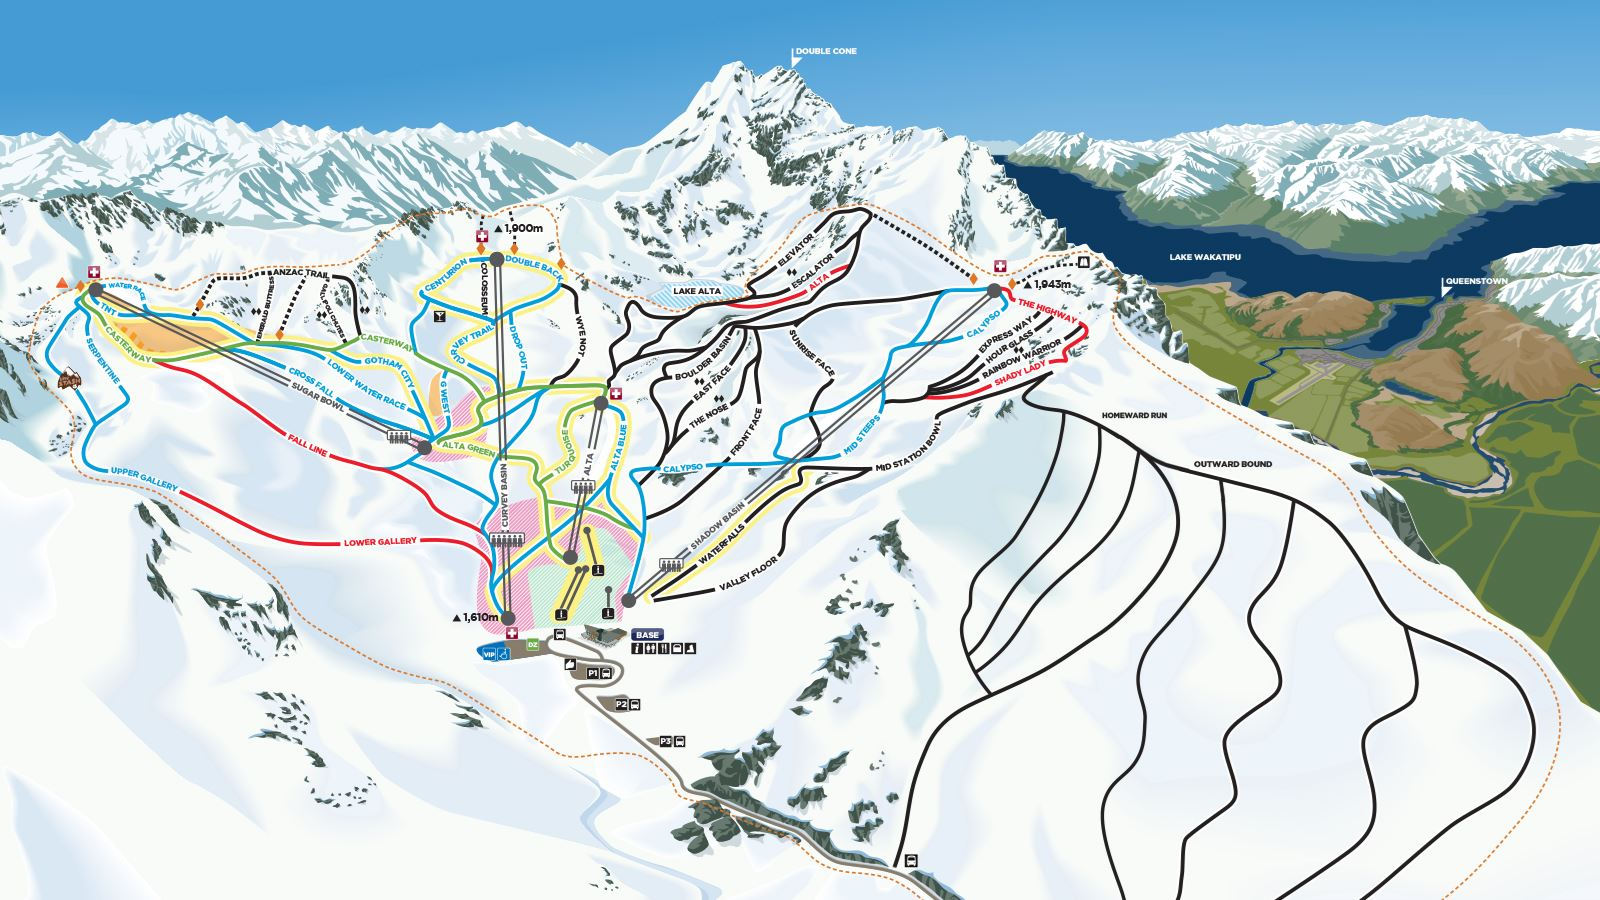 New Zealand Mountains Map.The Remarkables Ski Field The Remarkables Ski New Zealand